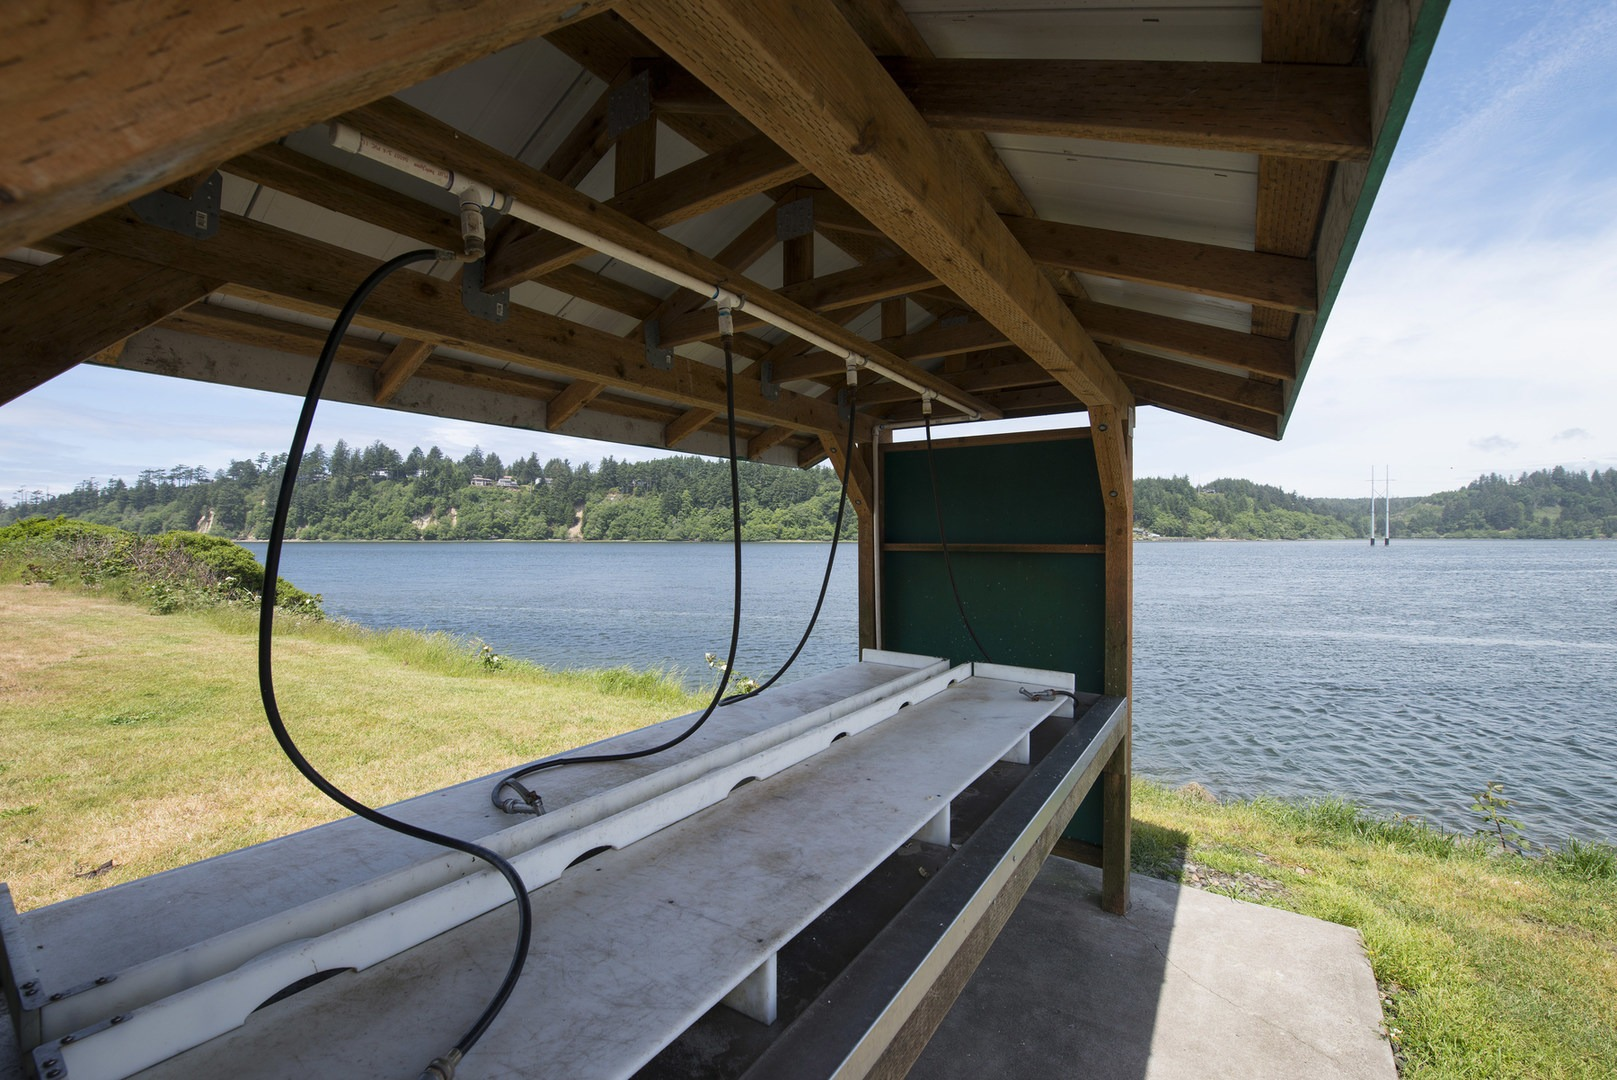 Alsea bay marina robinson park outdoor project for Fish cleaning station near me